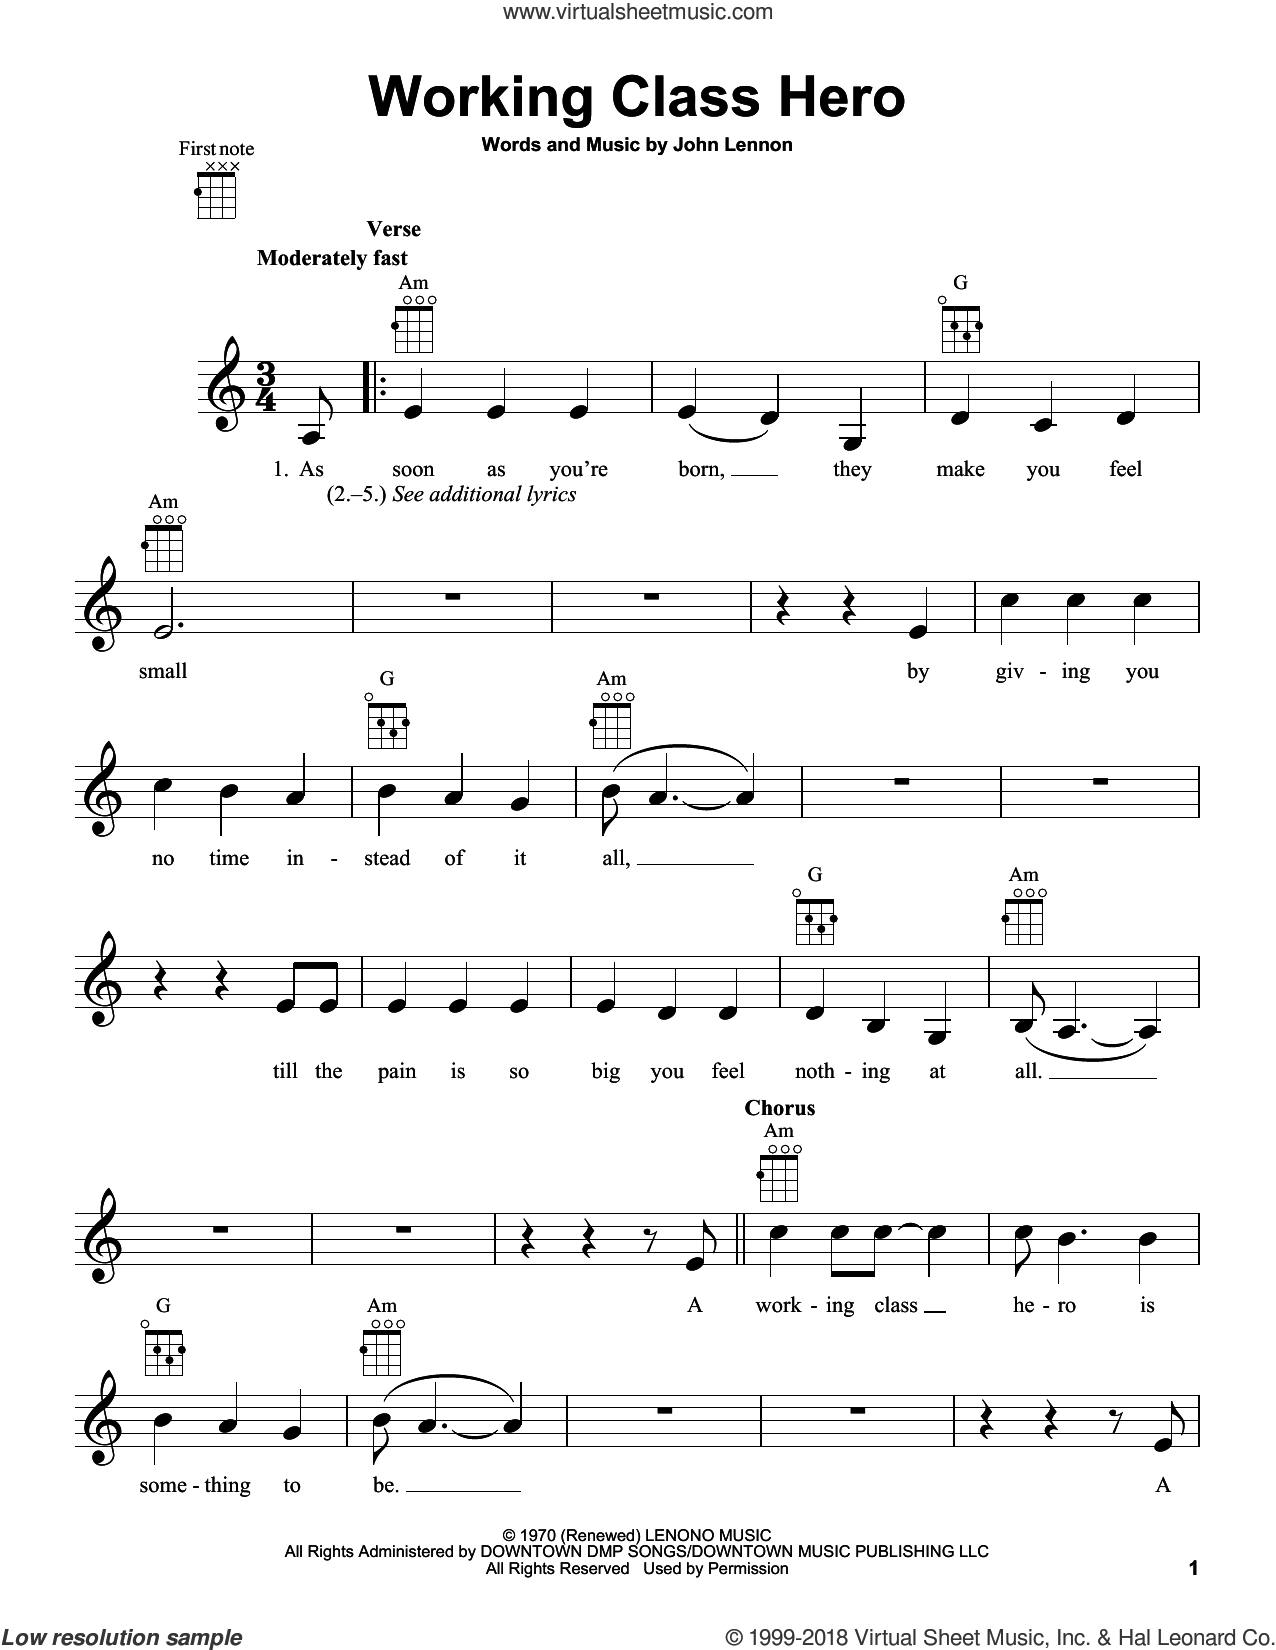 Working Class Hero sheet music for ukulele by John Lennon and Green Day, intermediate skill level